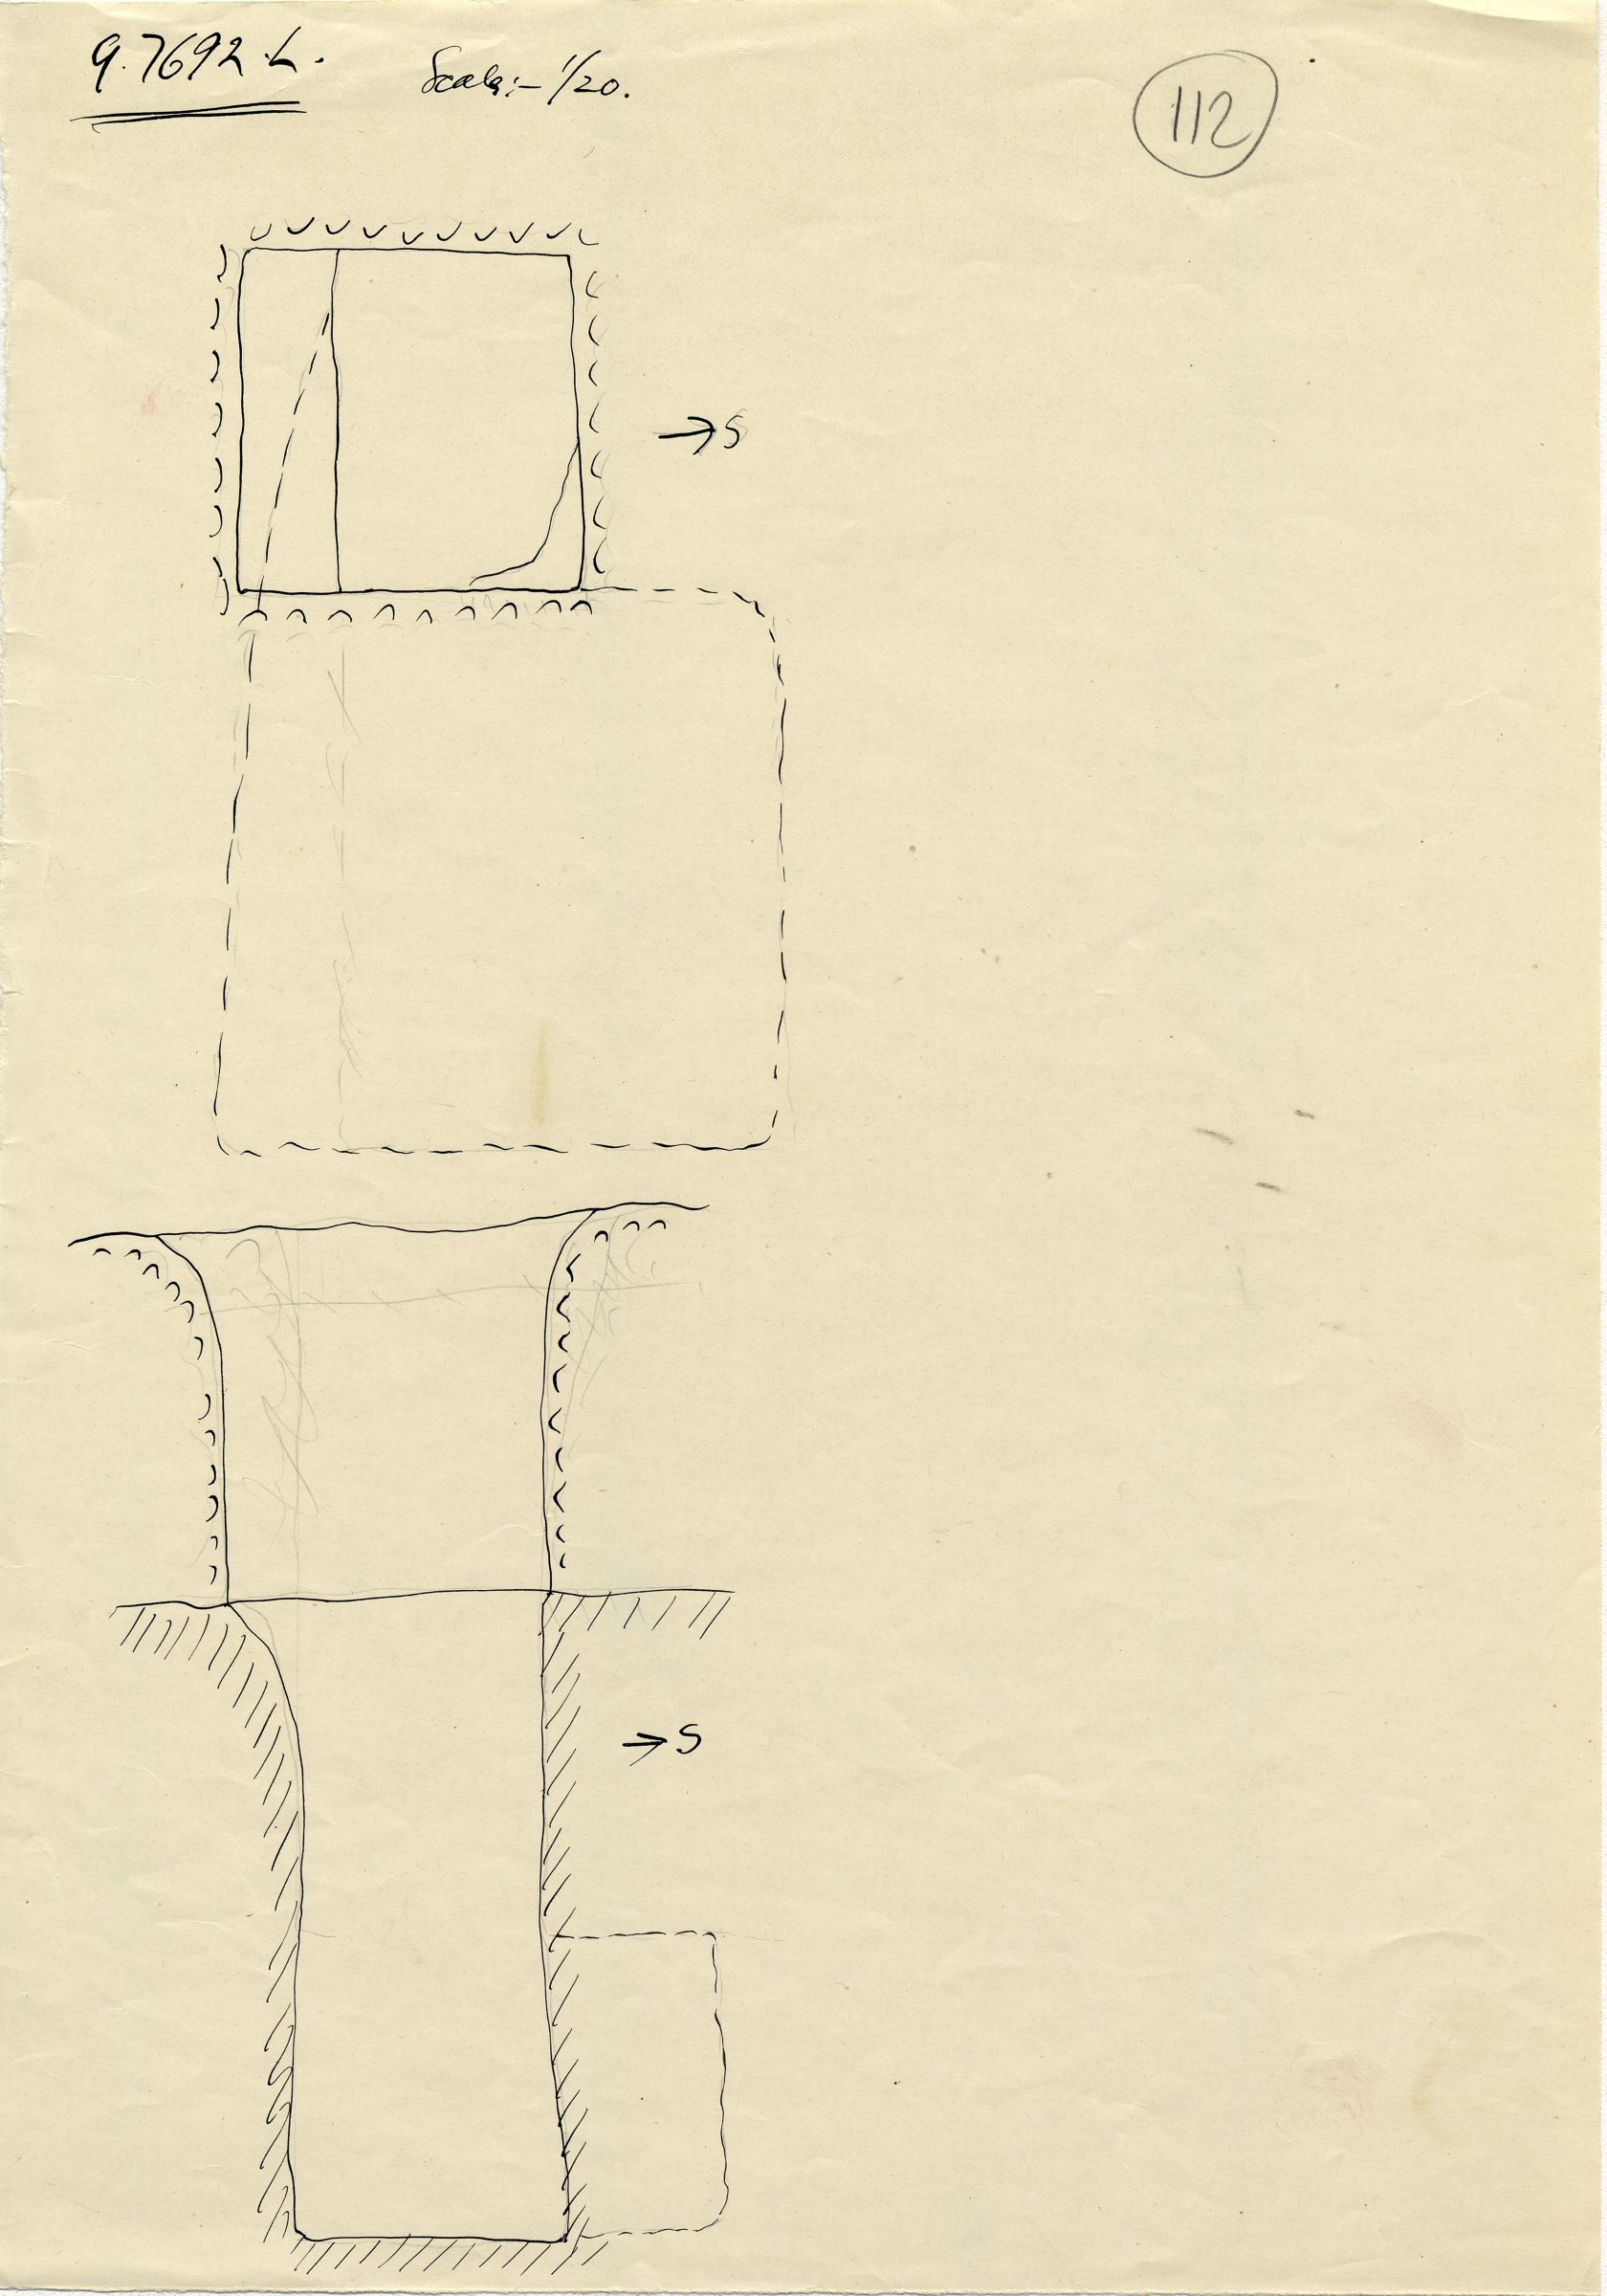 Maps and plans: G 7692a, Shaft L